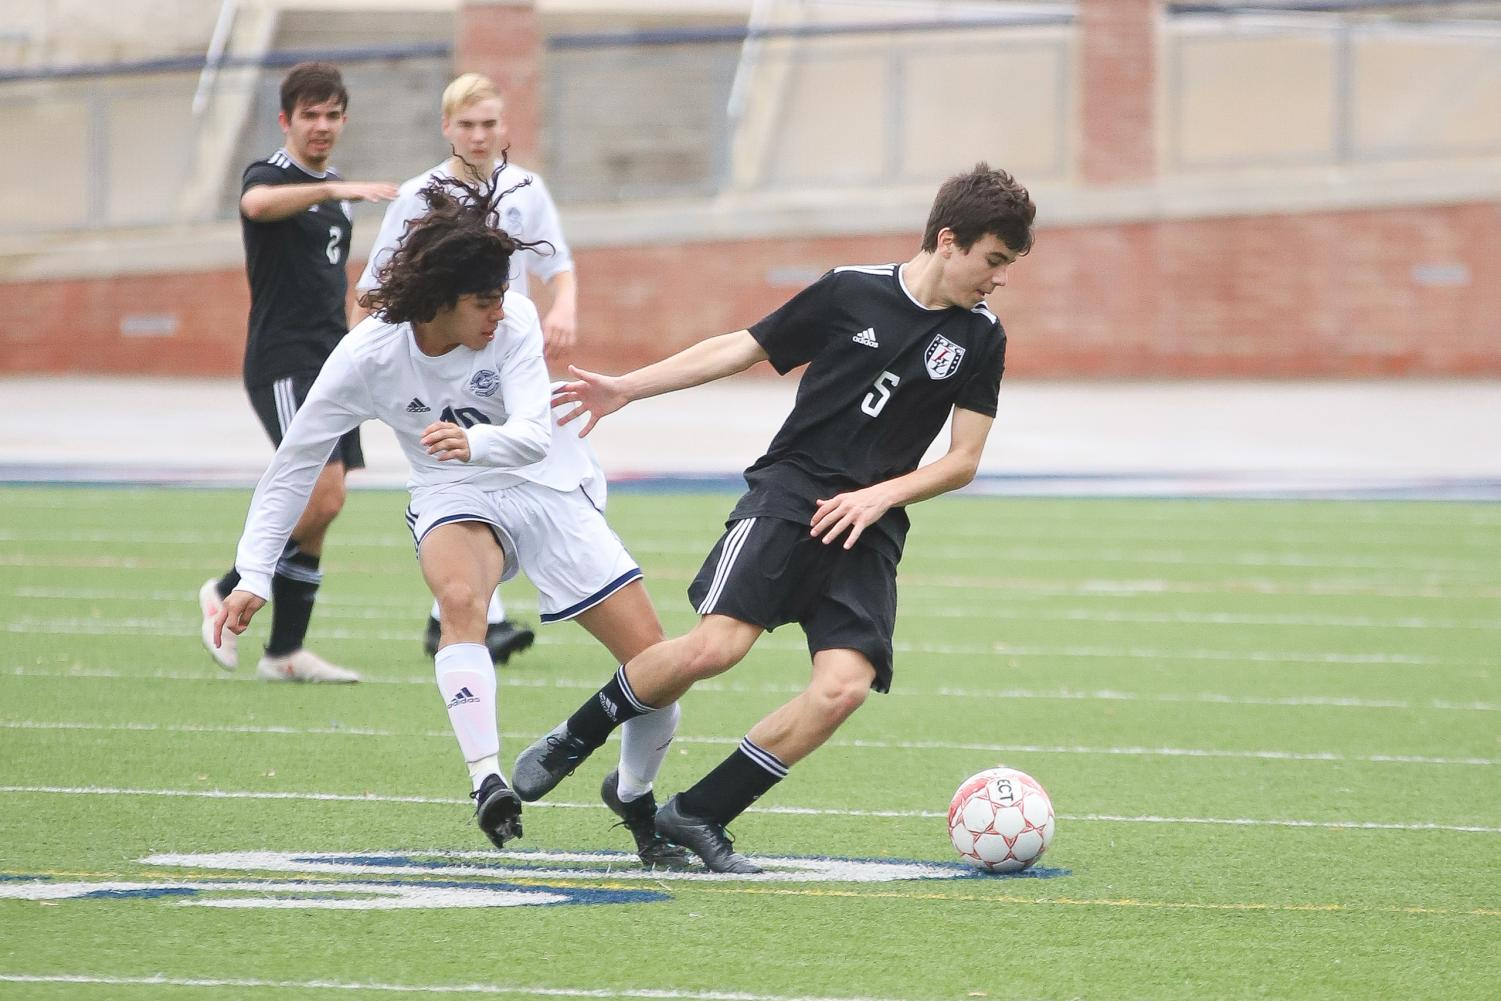 Sophomore Michael Beaney takes posession of the ball during the first quarter of the game against Flower Mound.